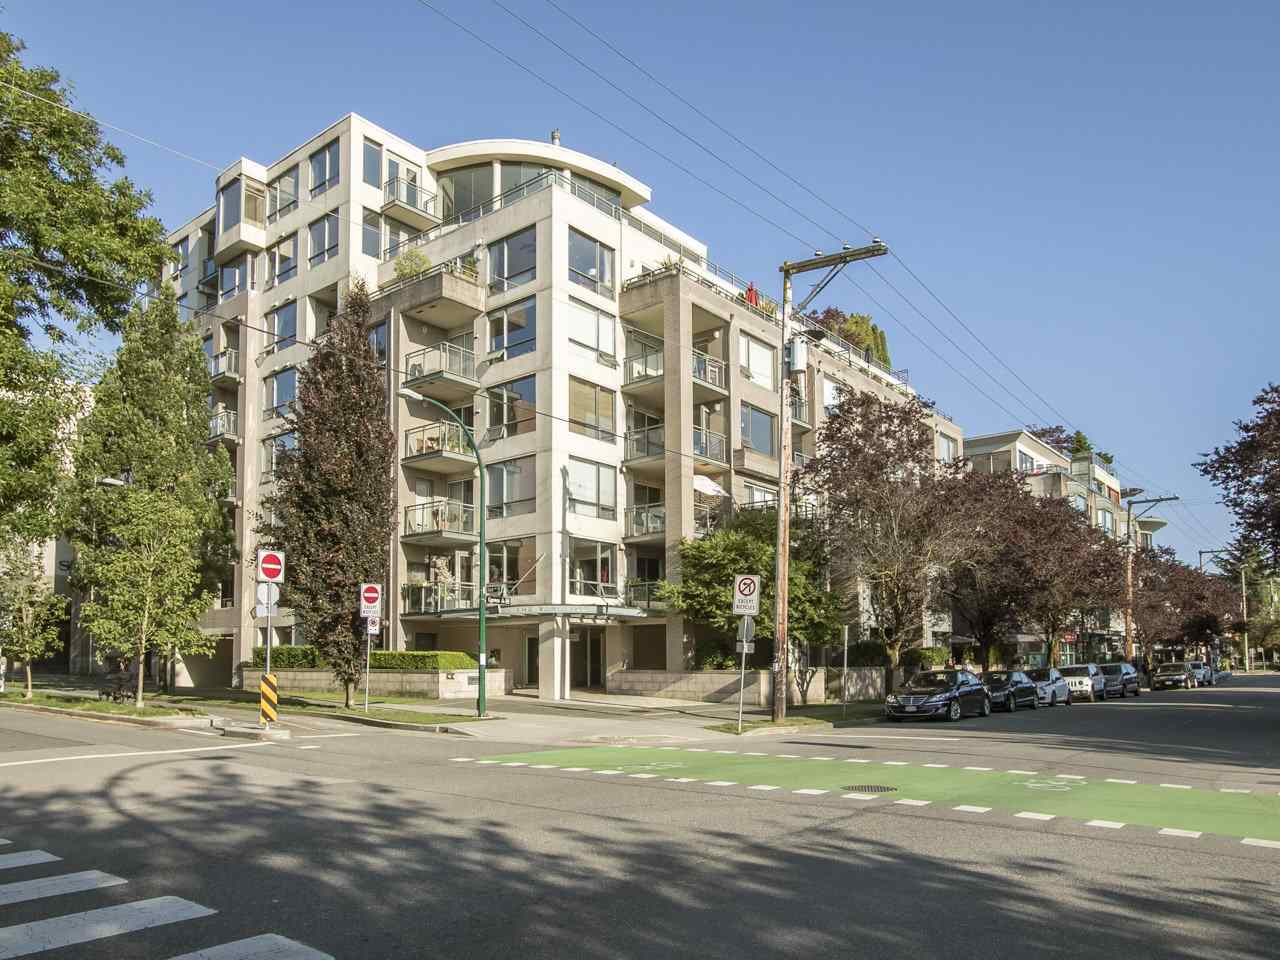 Main Photo: 203 1888 YORK AVENUE in Vancouver: Kitsilano Condo for sale (Vancouver West)  : MLS® # R2183620